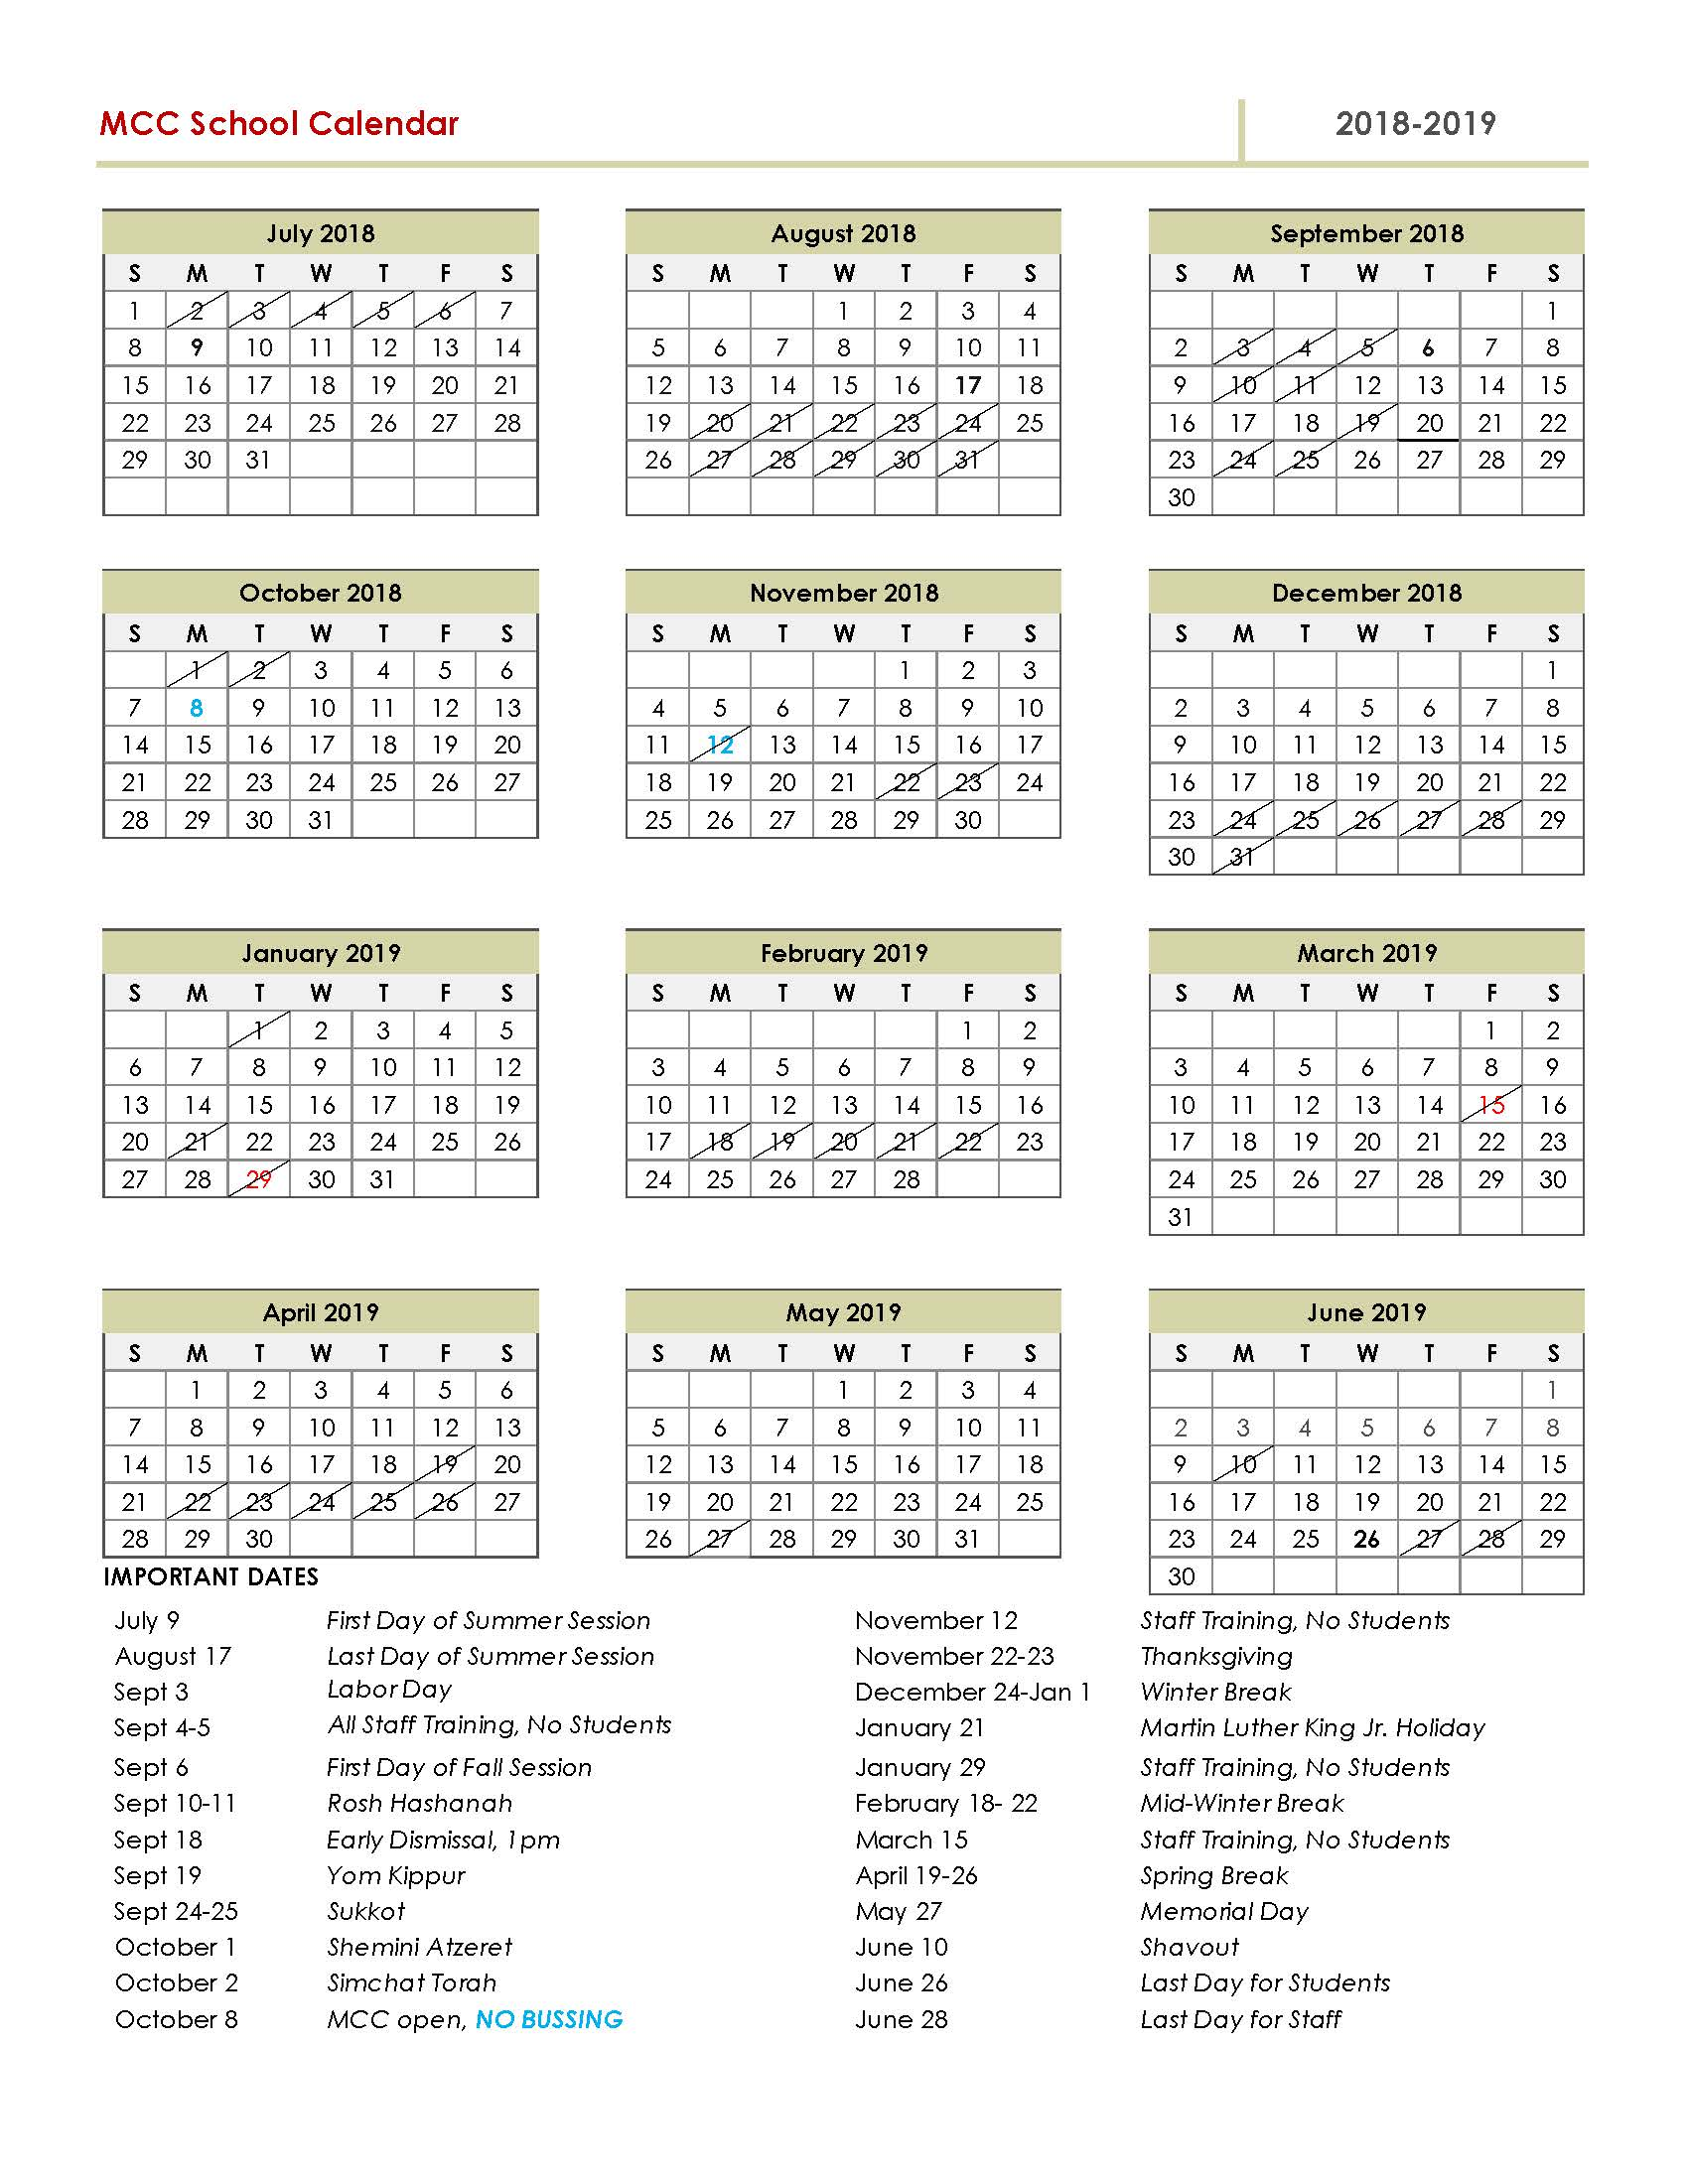 download full 2018 2019 calendar